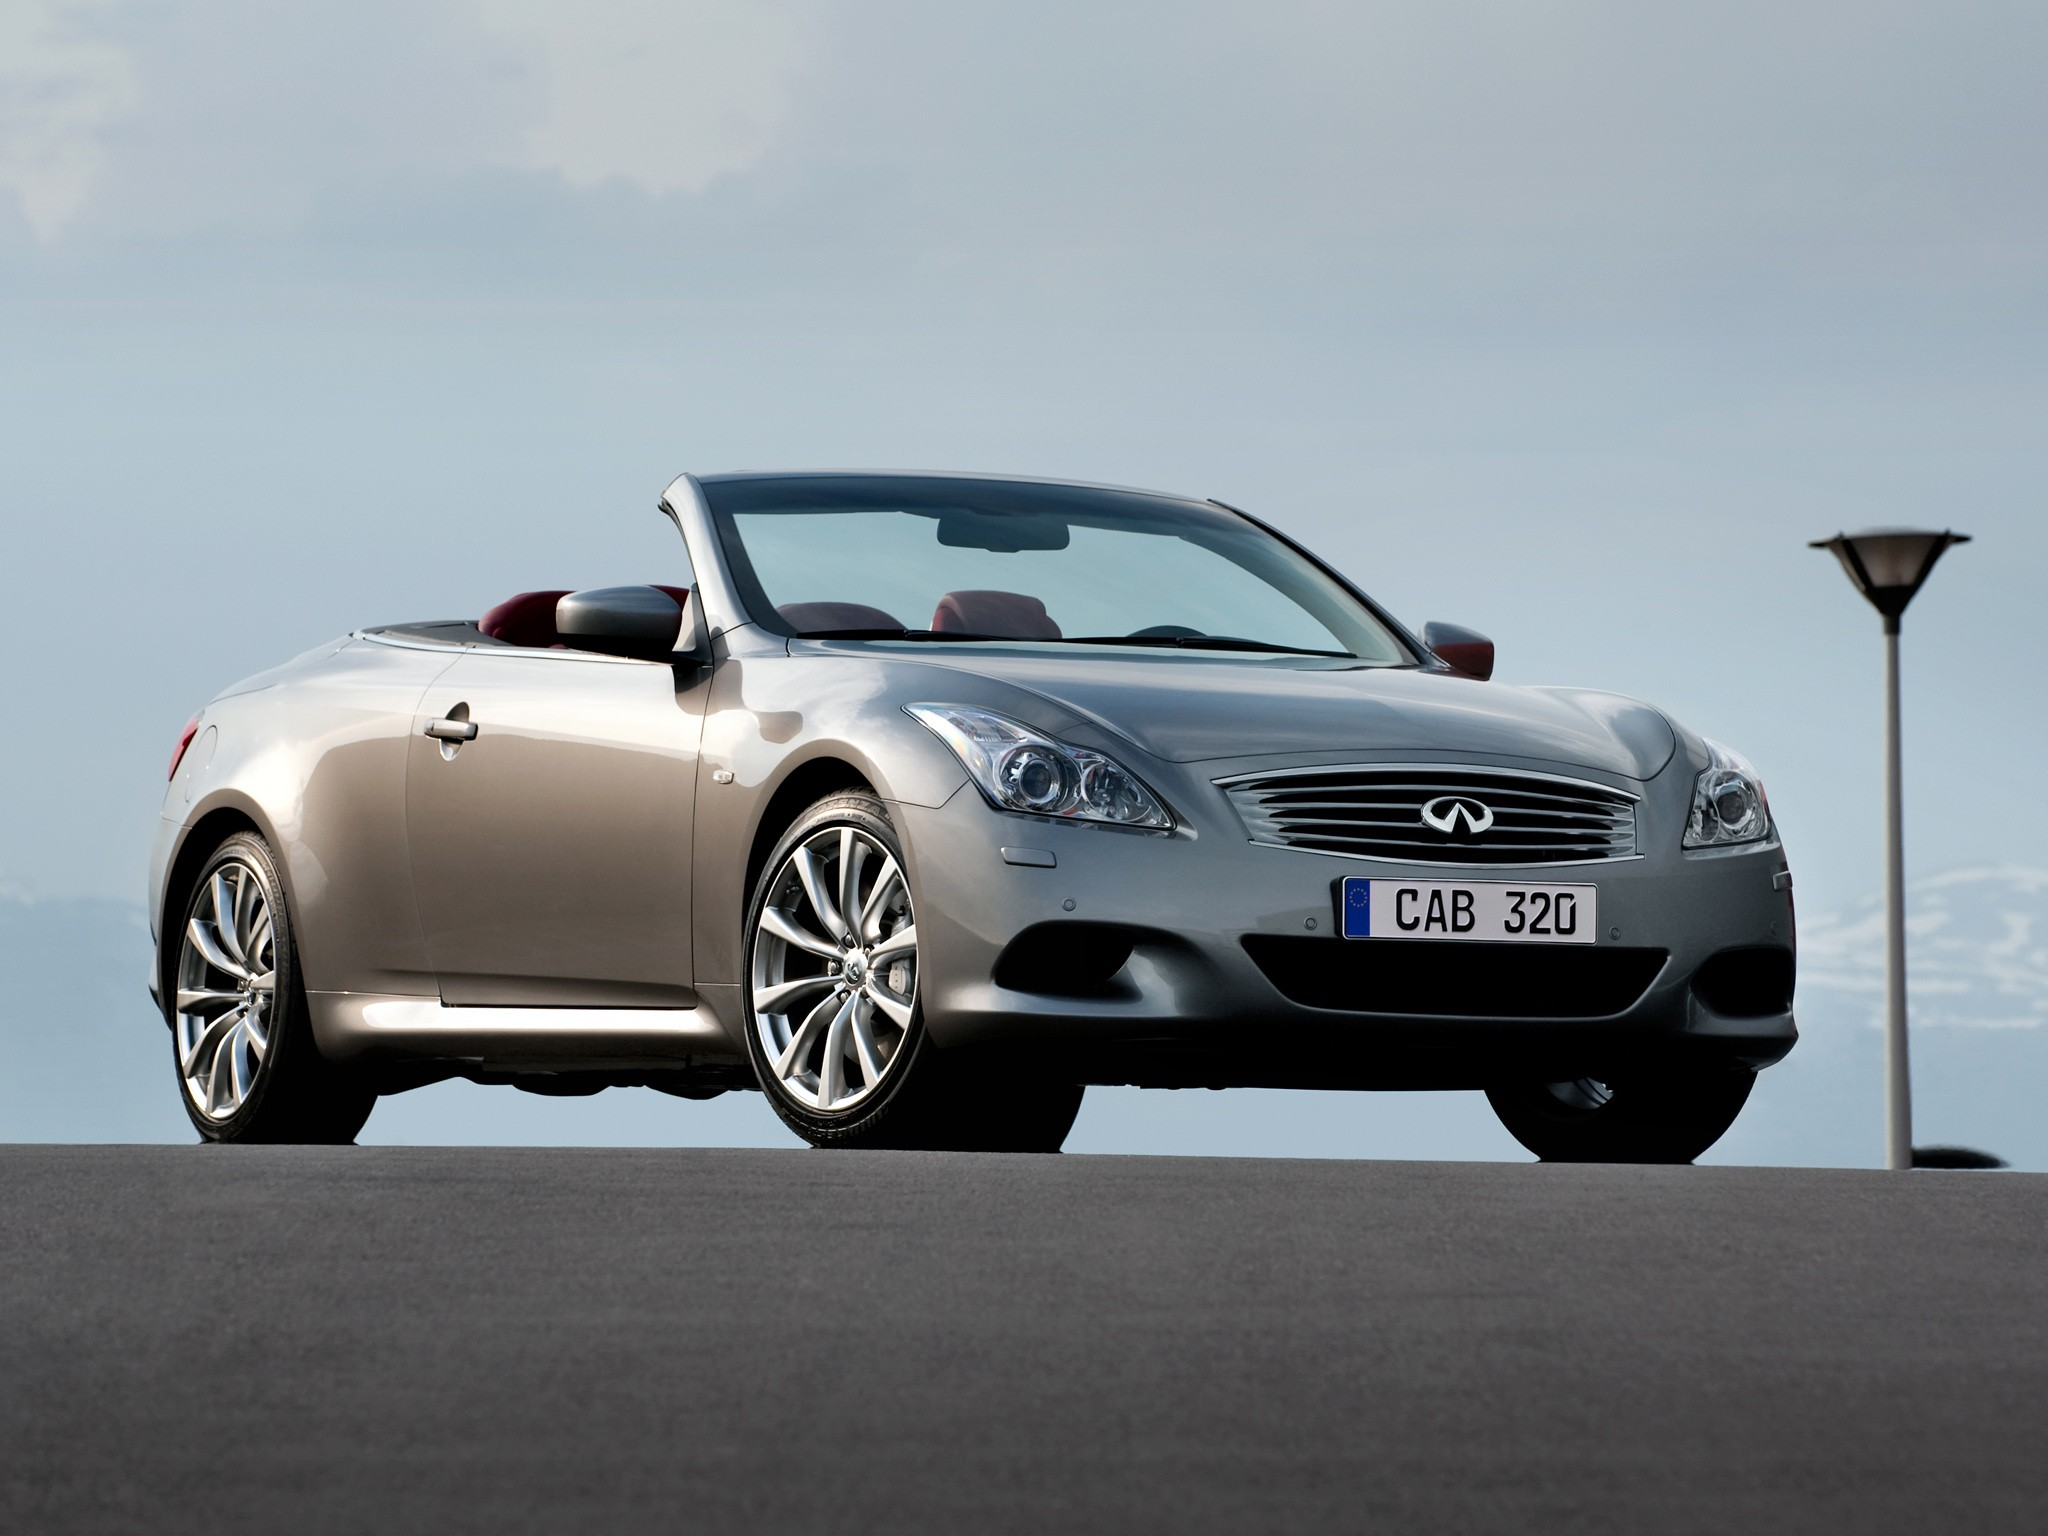 infiniti g37 convertible by - photo #46